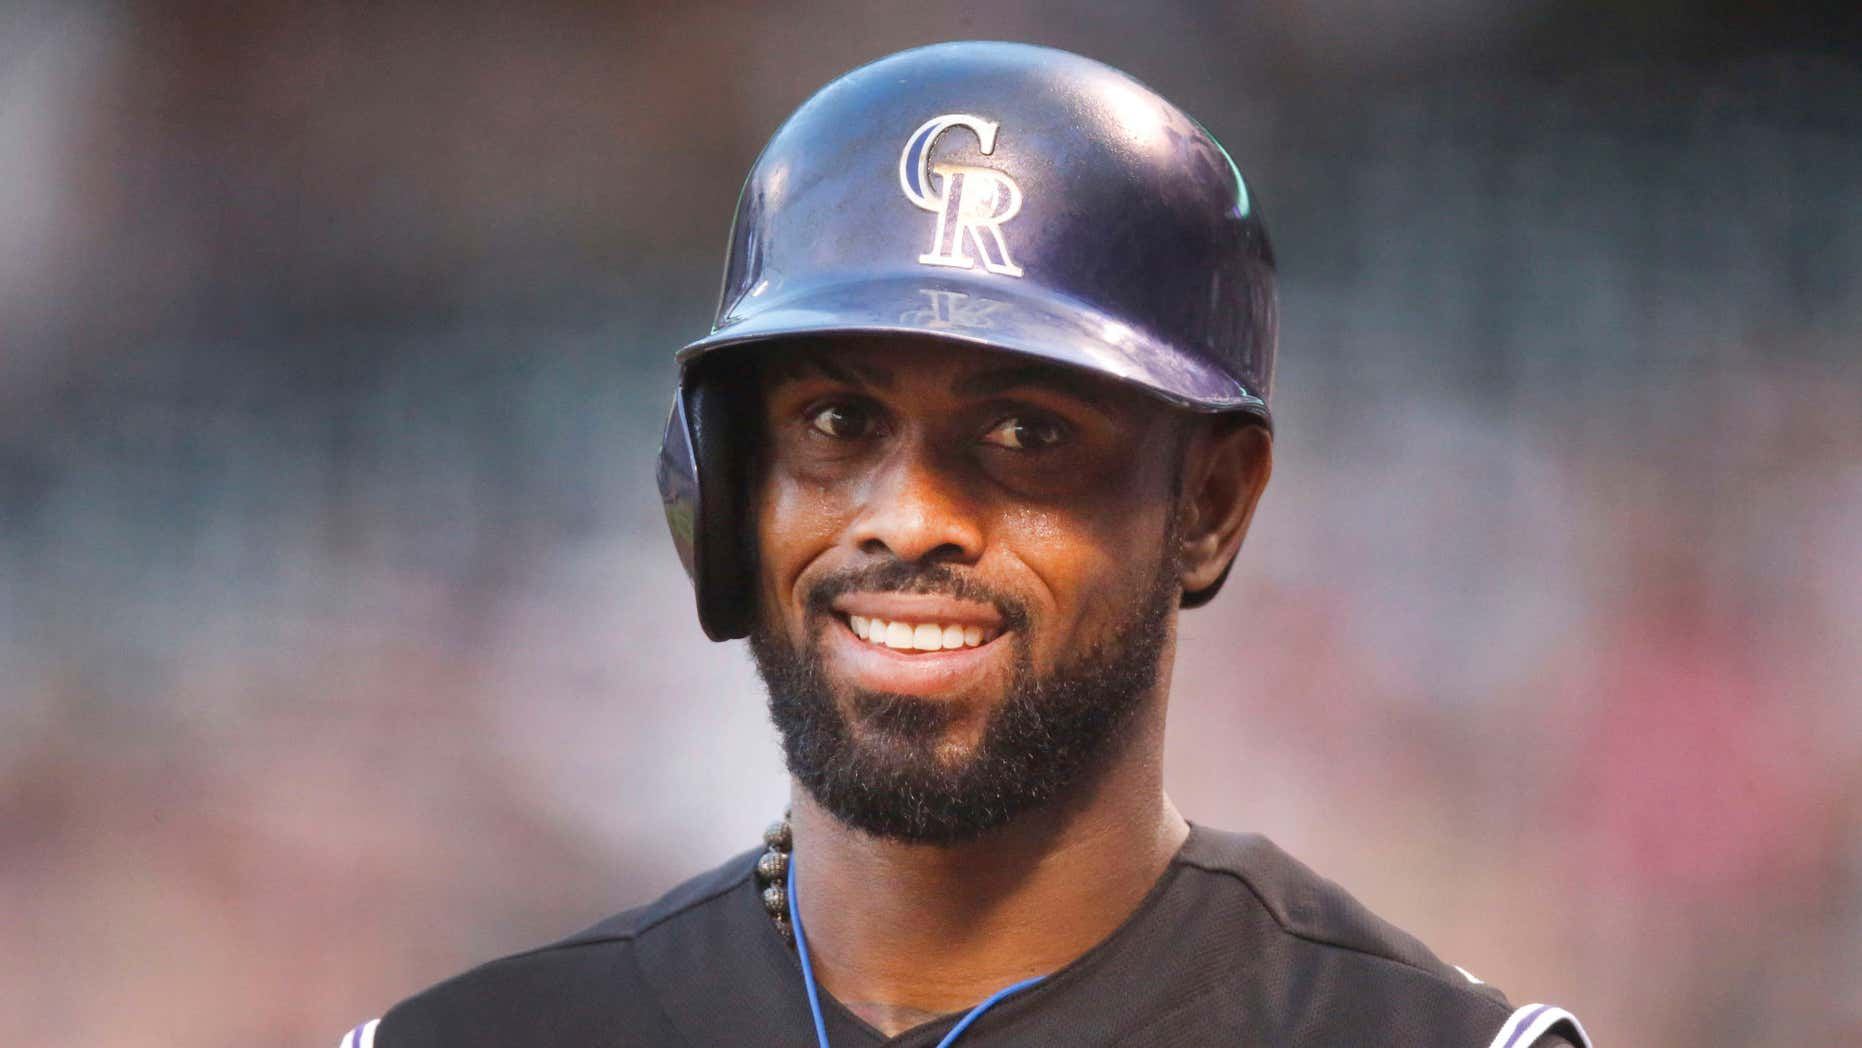 FILE - In this Aug. 21, 2015, file photo, Colorado Rockies shortstop Jose Reyes is seen in the first inning of a baseball game in Denver.